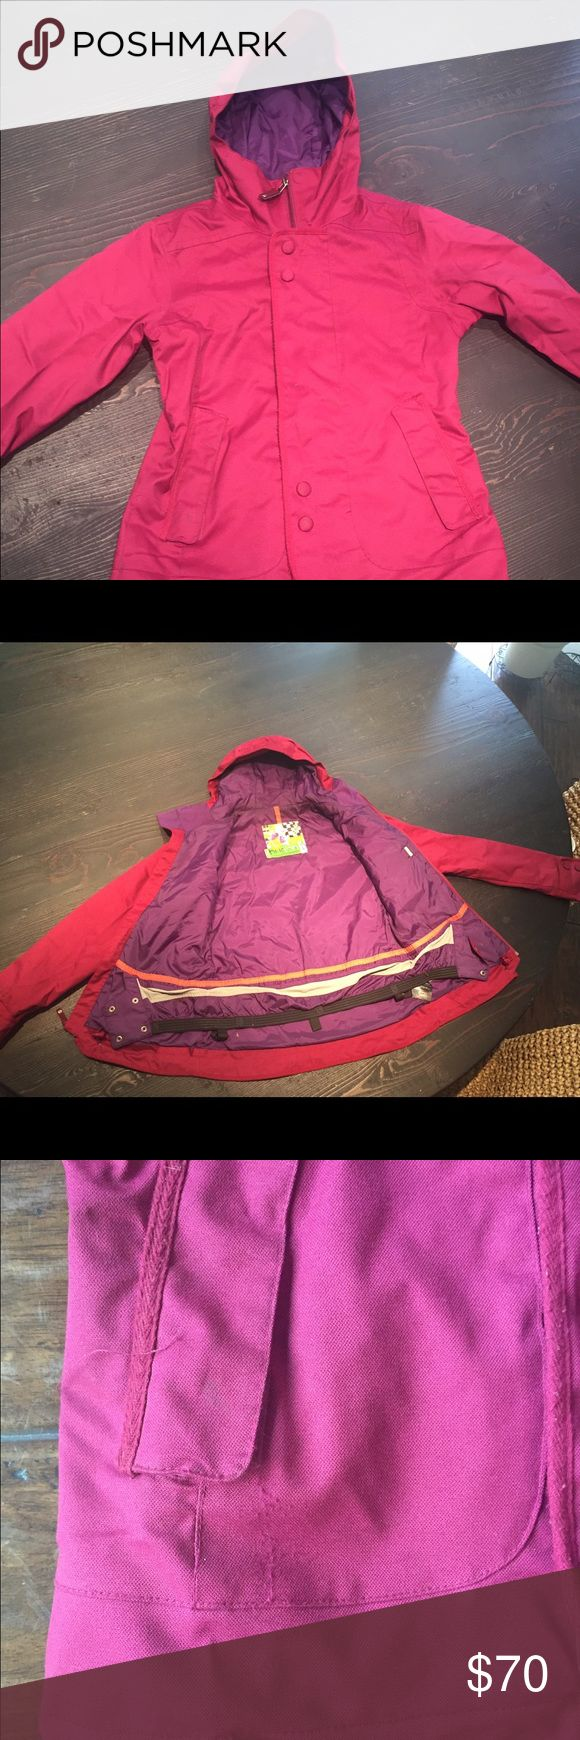 """Burton Dryride Jacket S This is not the Burton Jetset jacket that Jenny_lynn1 posted in her closet for sale but it is the one I received. She posted a photo of the jacket in """"sangria"""" from the Zumiez website and maintains that it was only worn once """"for a couple hours"""" This jacket is old, very worn, dirty, stained, pilled and reeks of cigarette smoke. I will happily sell it for the $50 I paid plus my shipping cost. Burton Jackets & Coats"""